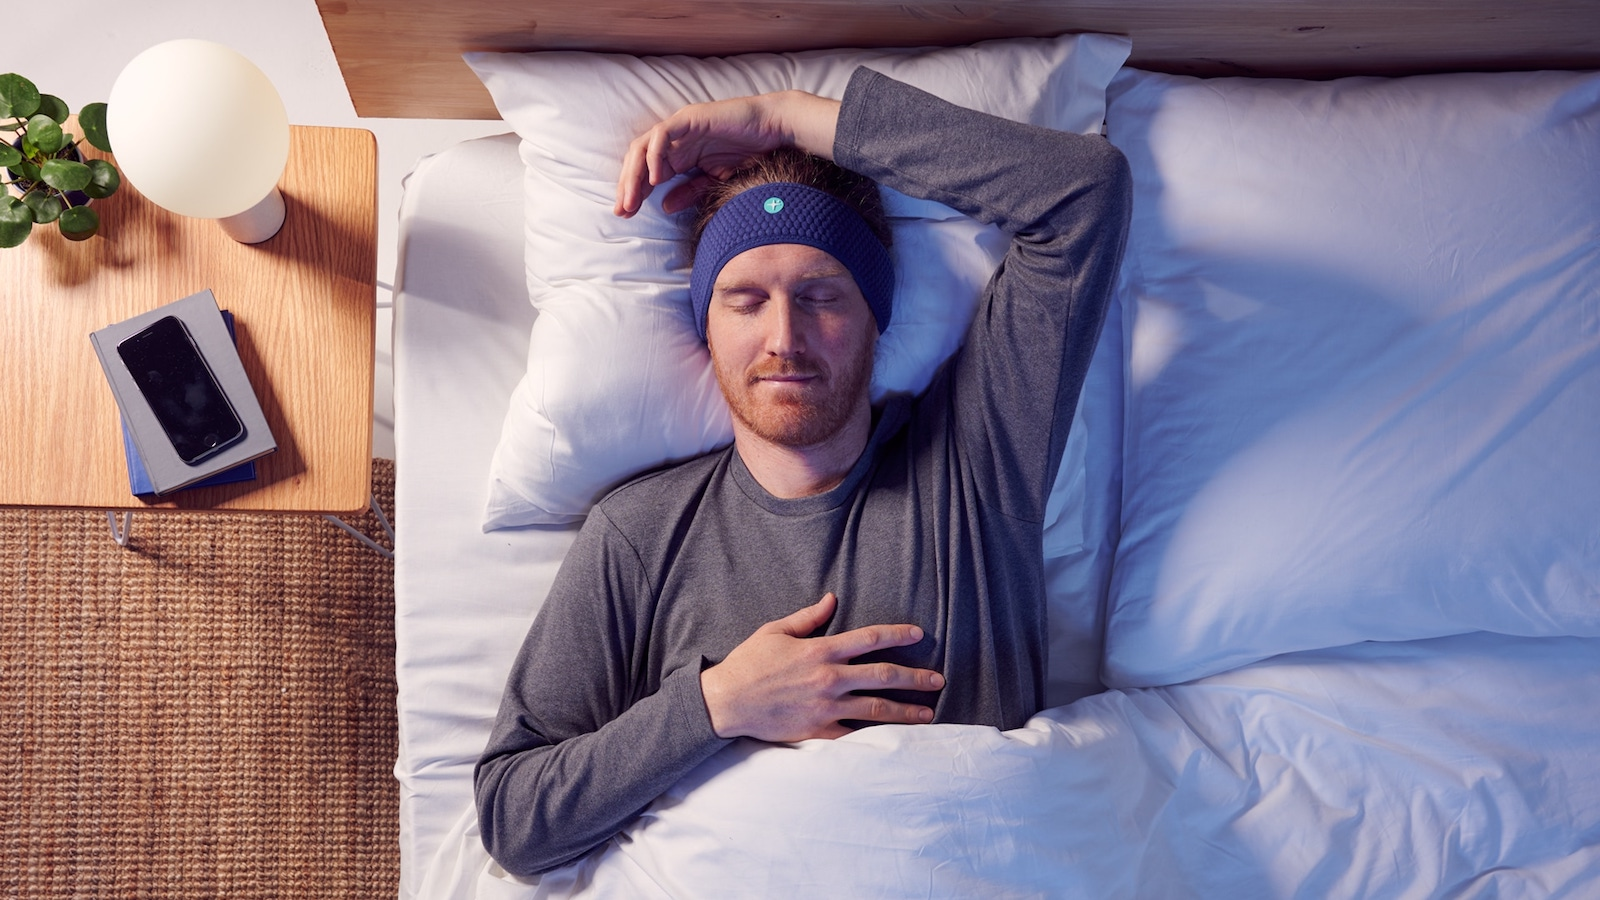 The 10 Best Gadgets For Your Bedroom That Make You Sleep Better